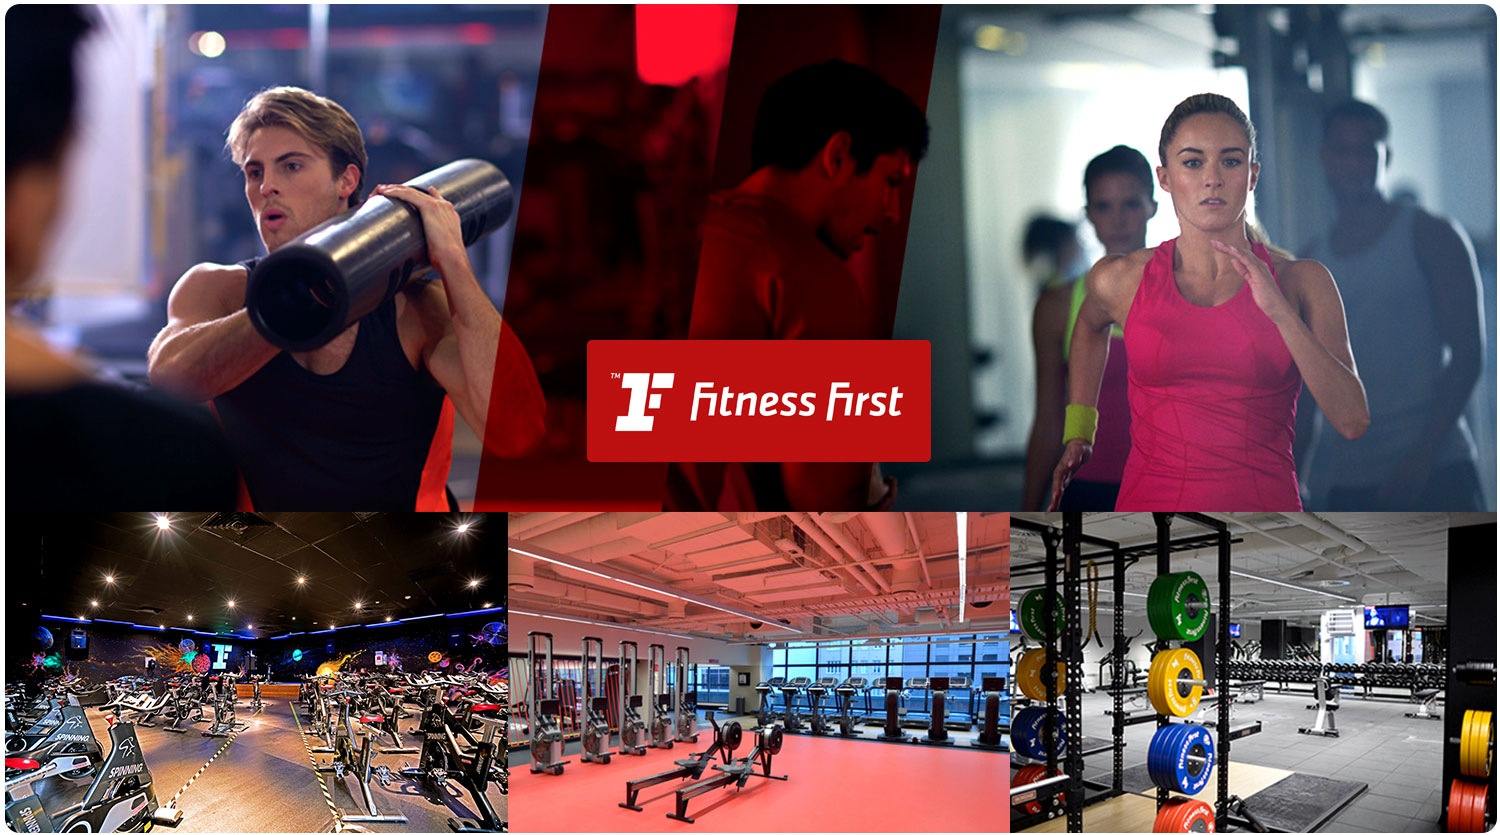 Start your Fitness Journey with Fitness First with only $14.95 for 14 days at Fitness First Darlinghurst NSW. Experience our first class gym and freestyle classes inc. Pilates, Yoga, HIIT, Les Mills and more. Take the first step with Fitness First Darlinghurst NSW.